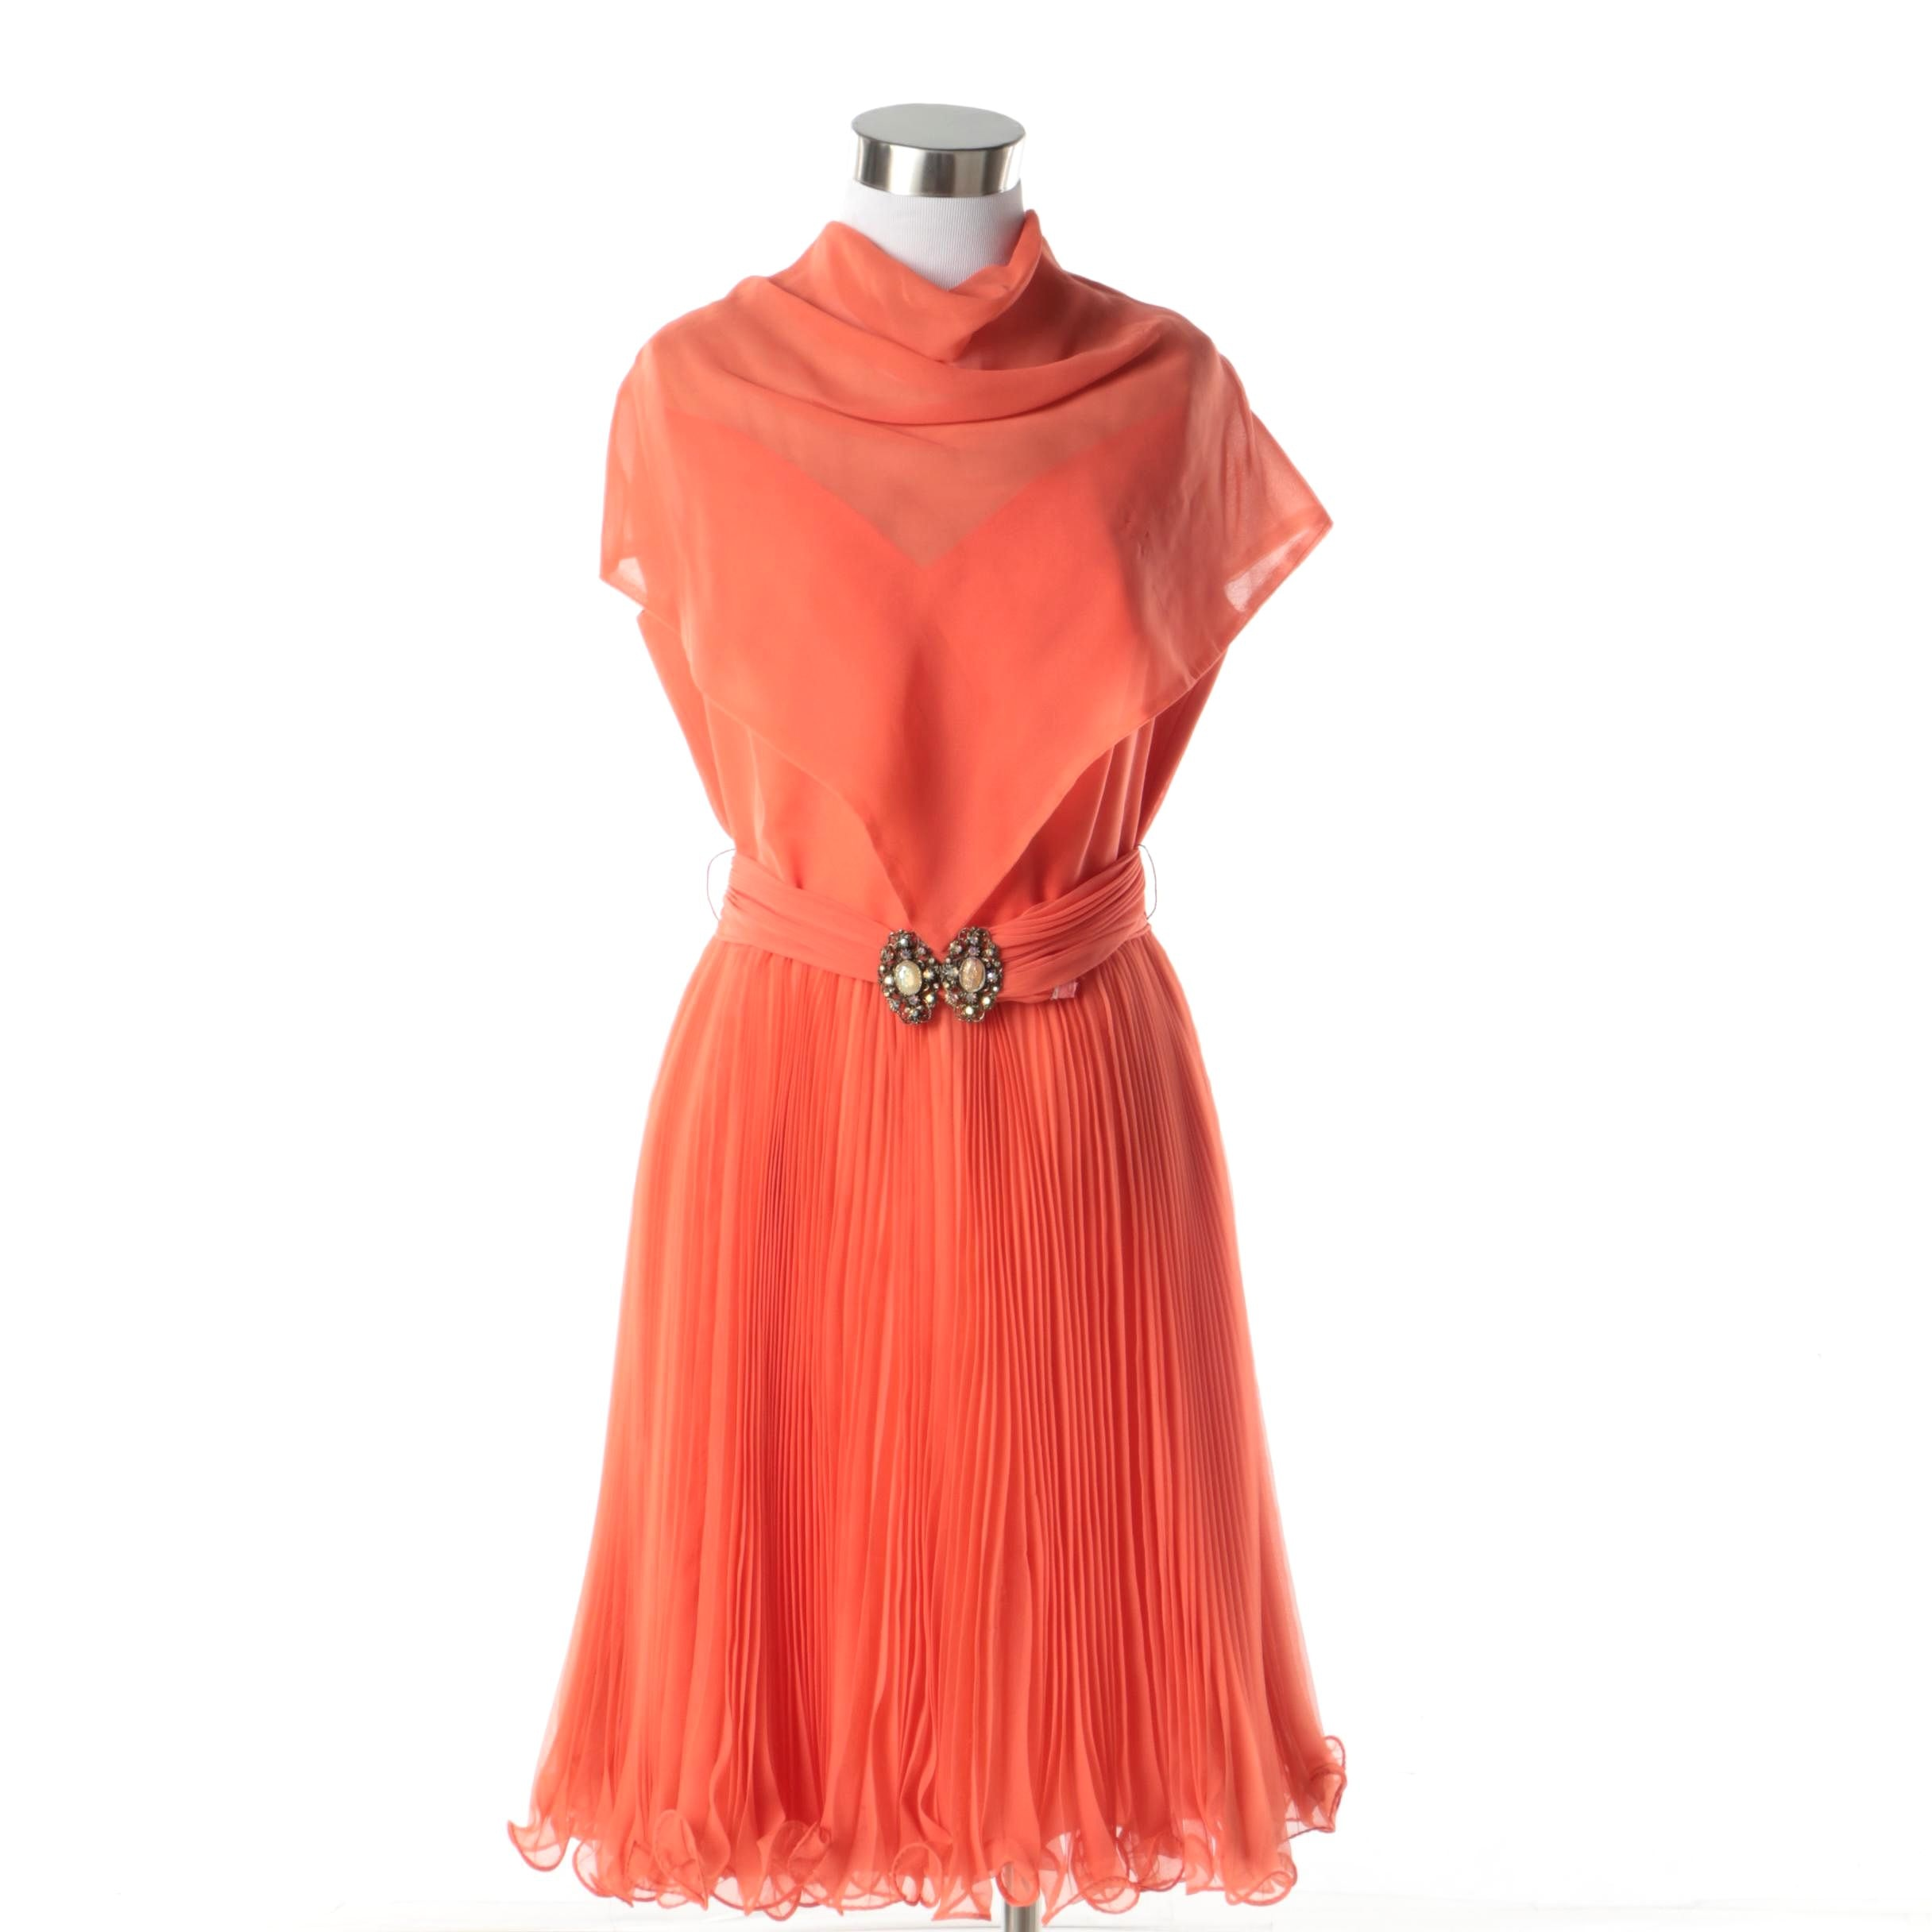 1970s Vintage Jack Bryan Orange Cocktail Dress with Chiffon Pleat Skirt